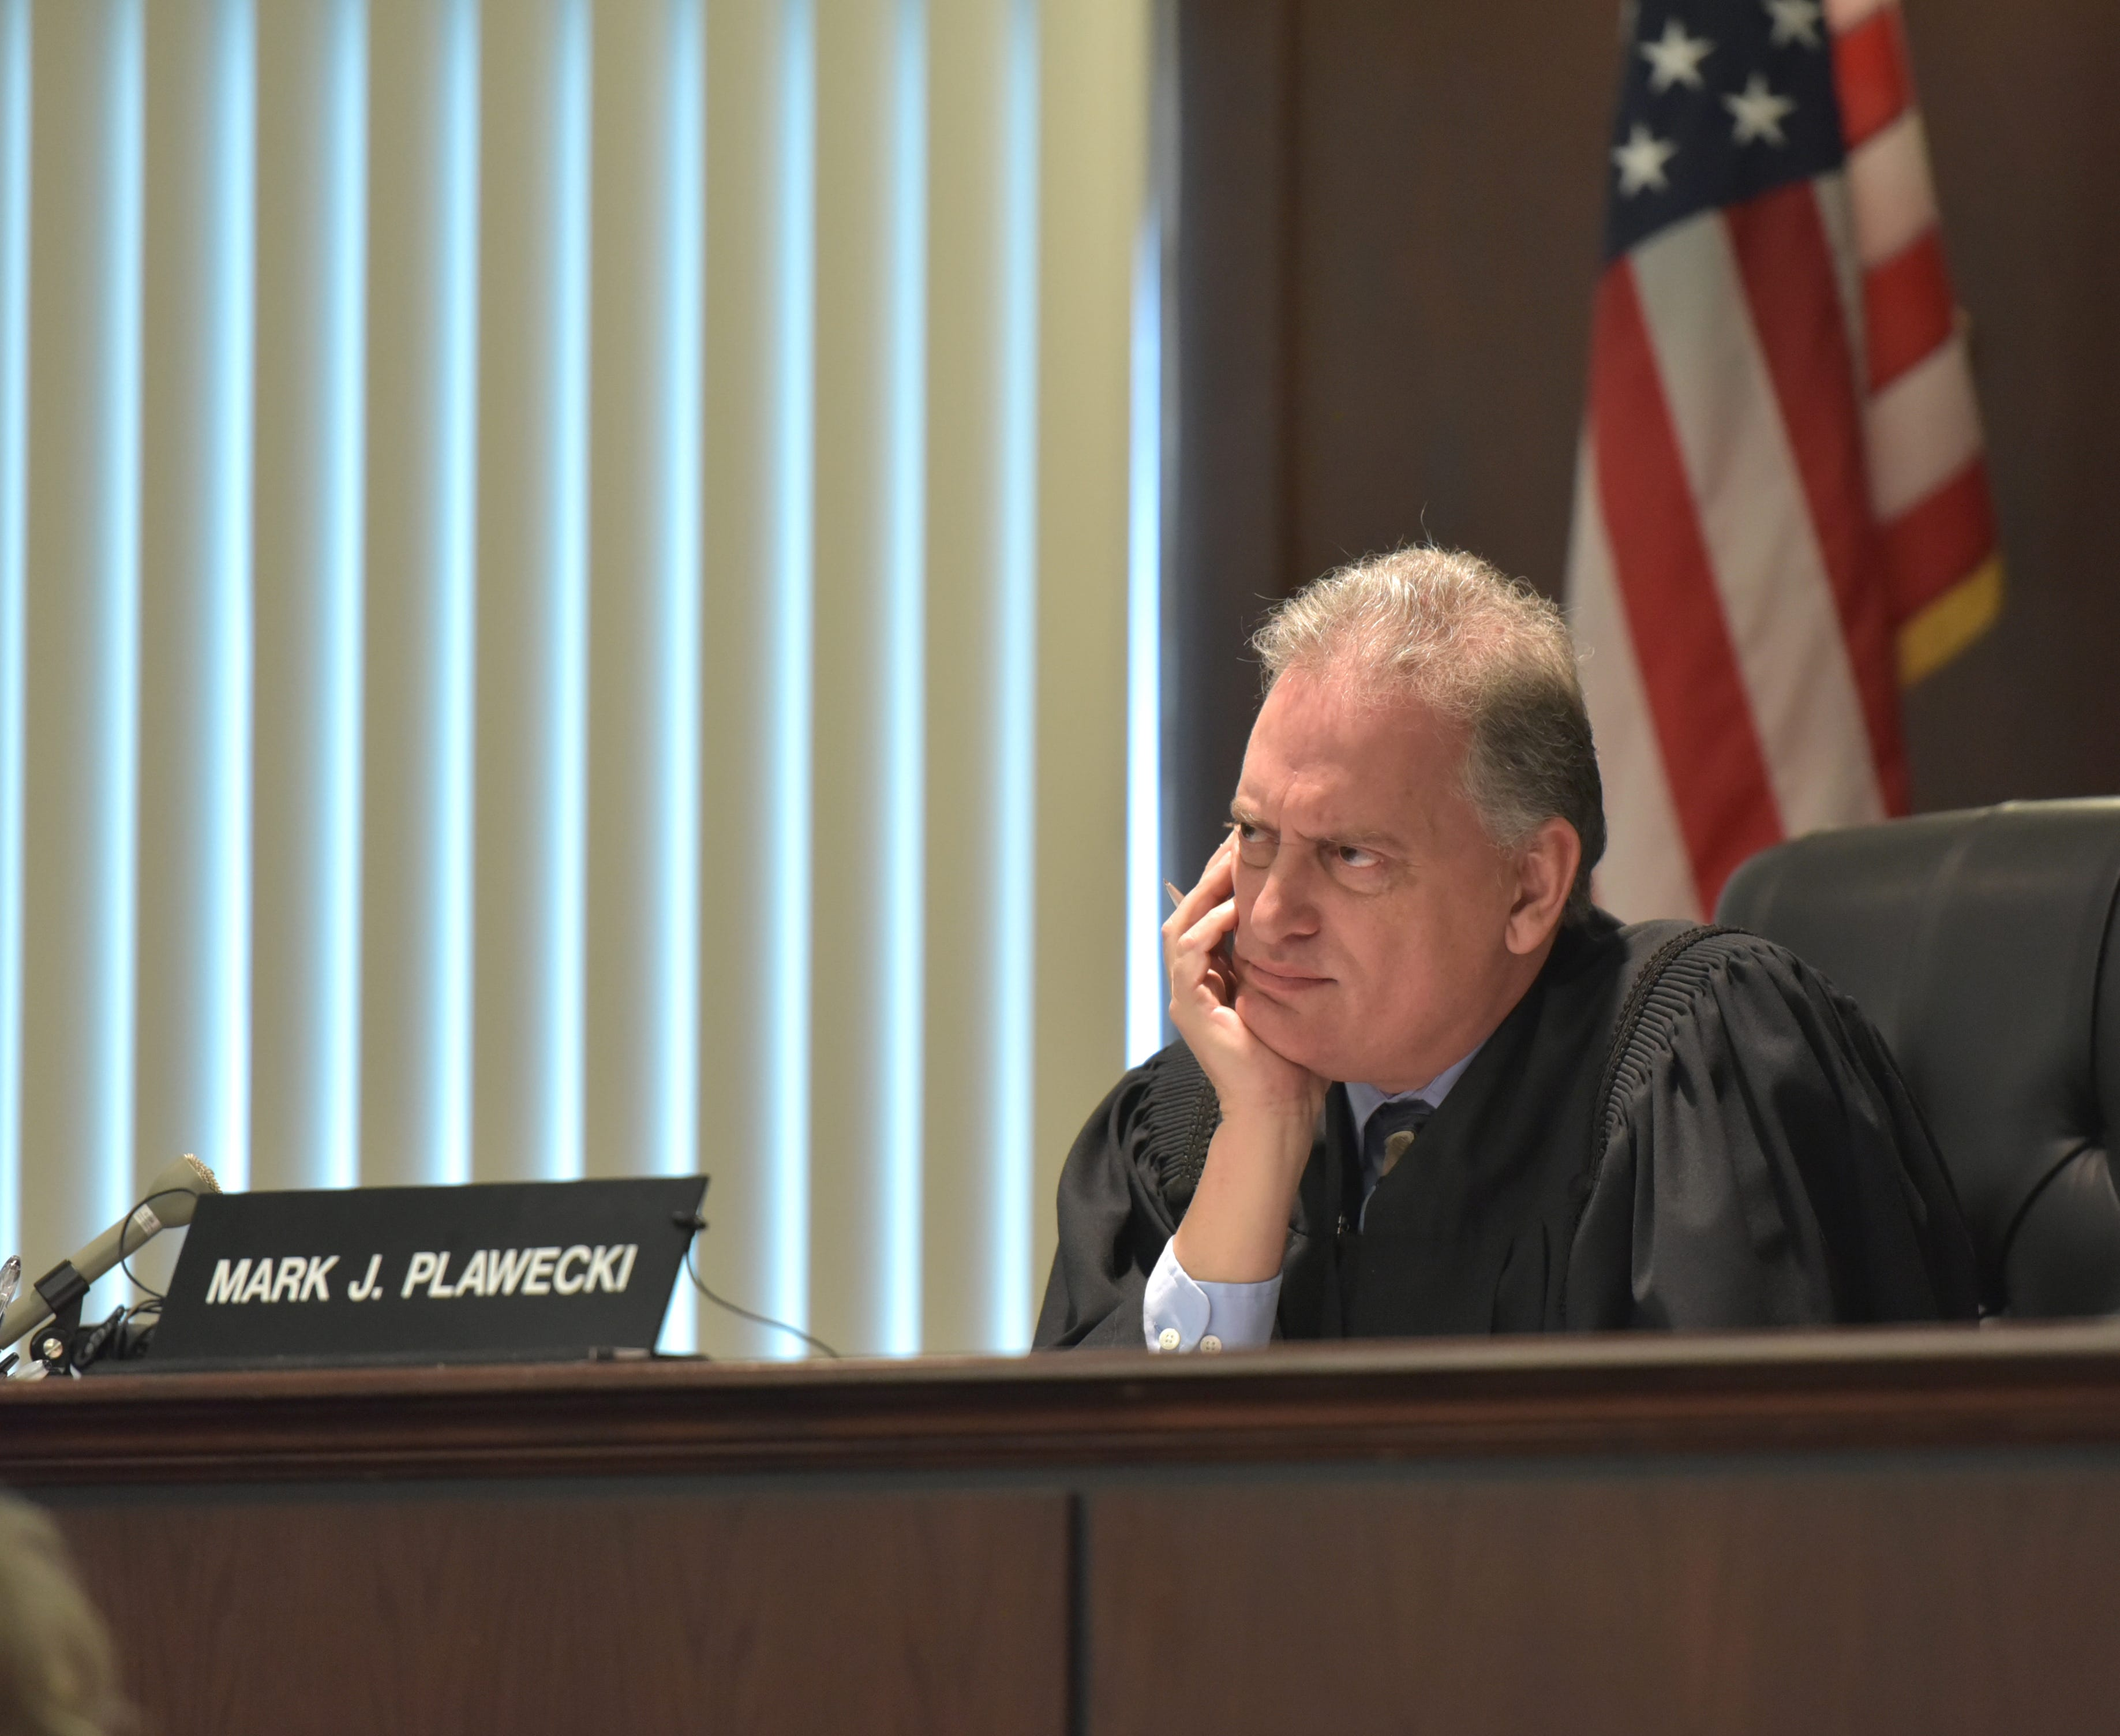 Judge Mark J. Plawecki listens to information given in a preliminary exam of defendants Ronald Buckley, Matt Dicosola and Leah Maynard at the Dearborn Heights courtroom on Jan. 18.